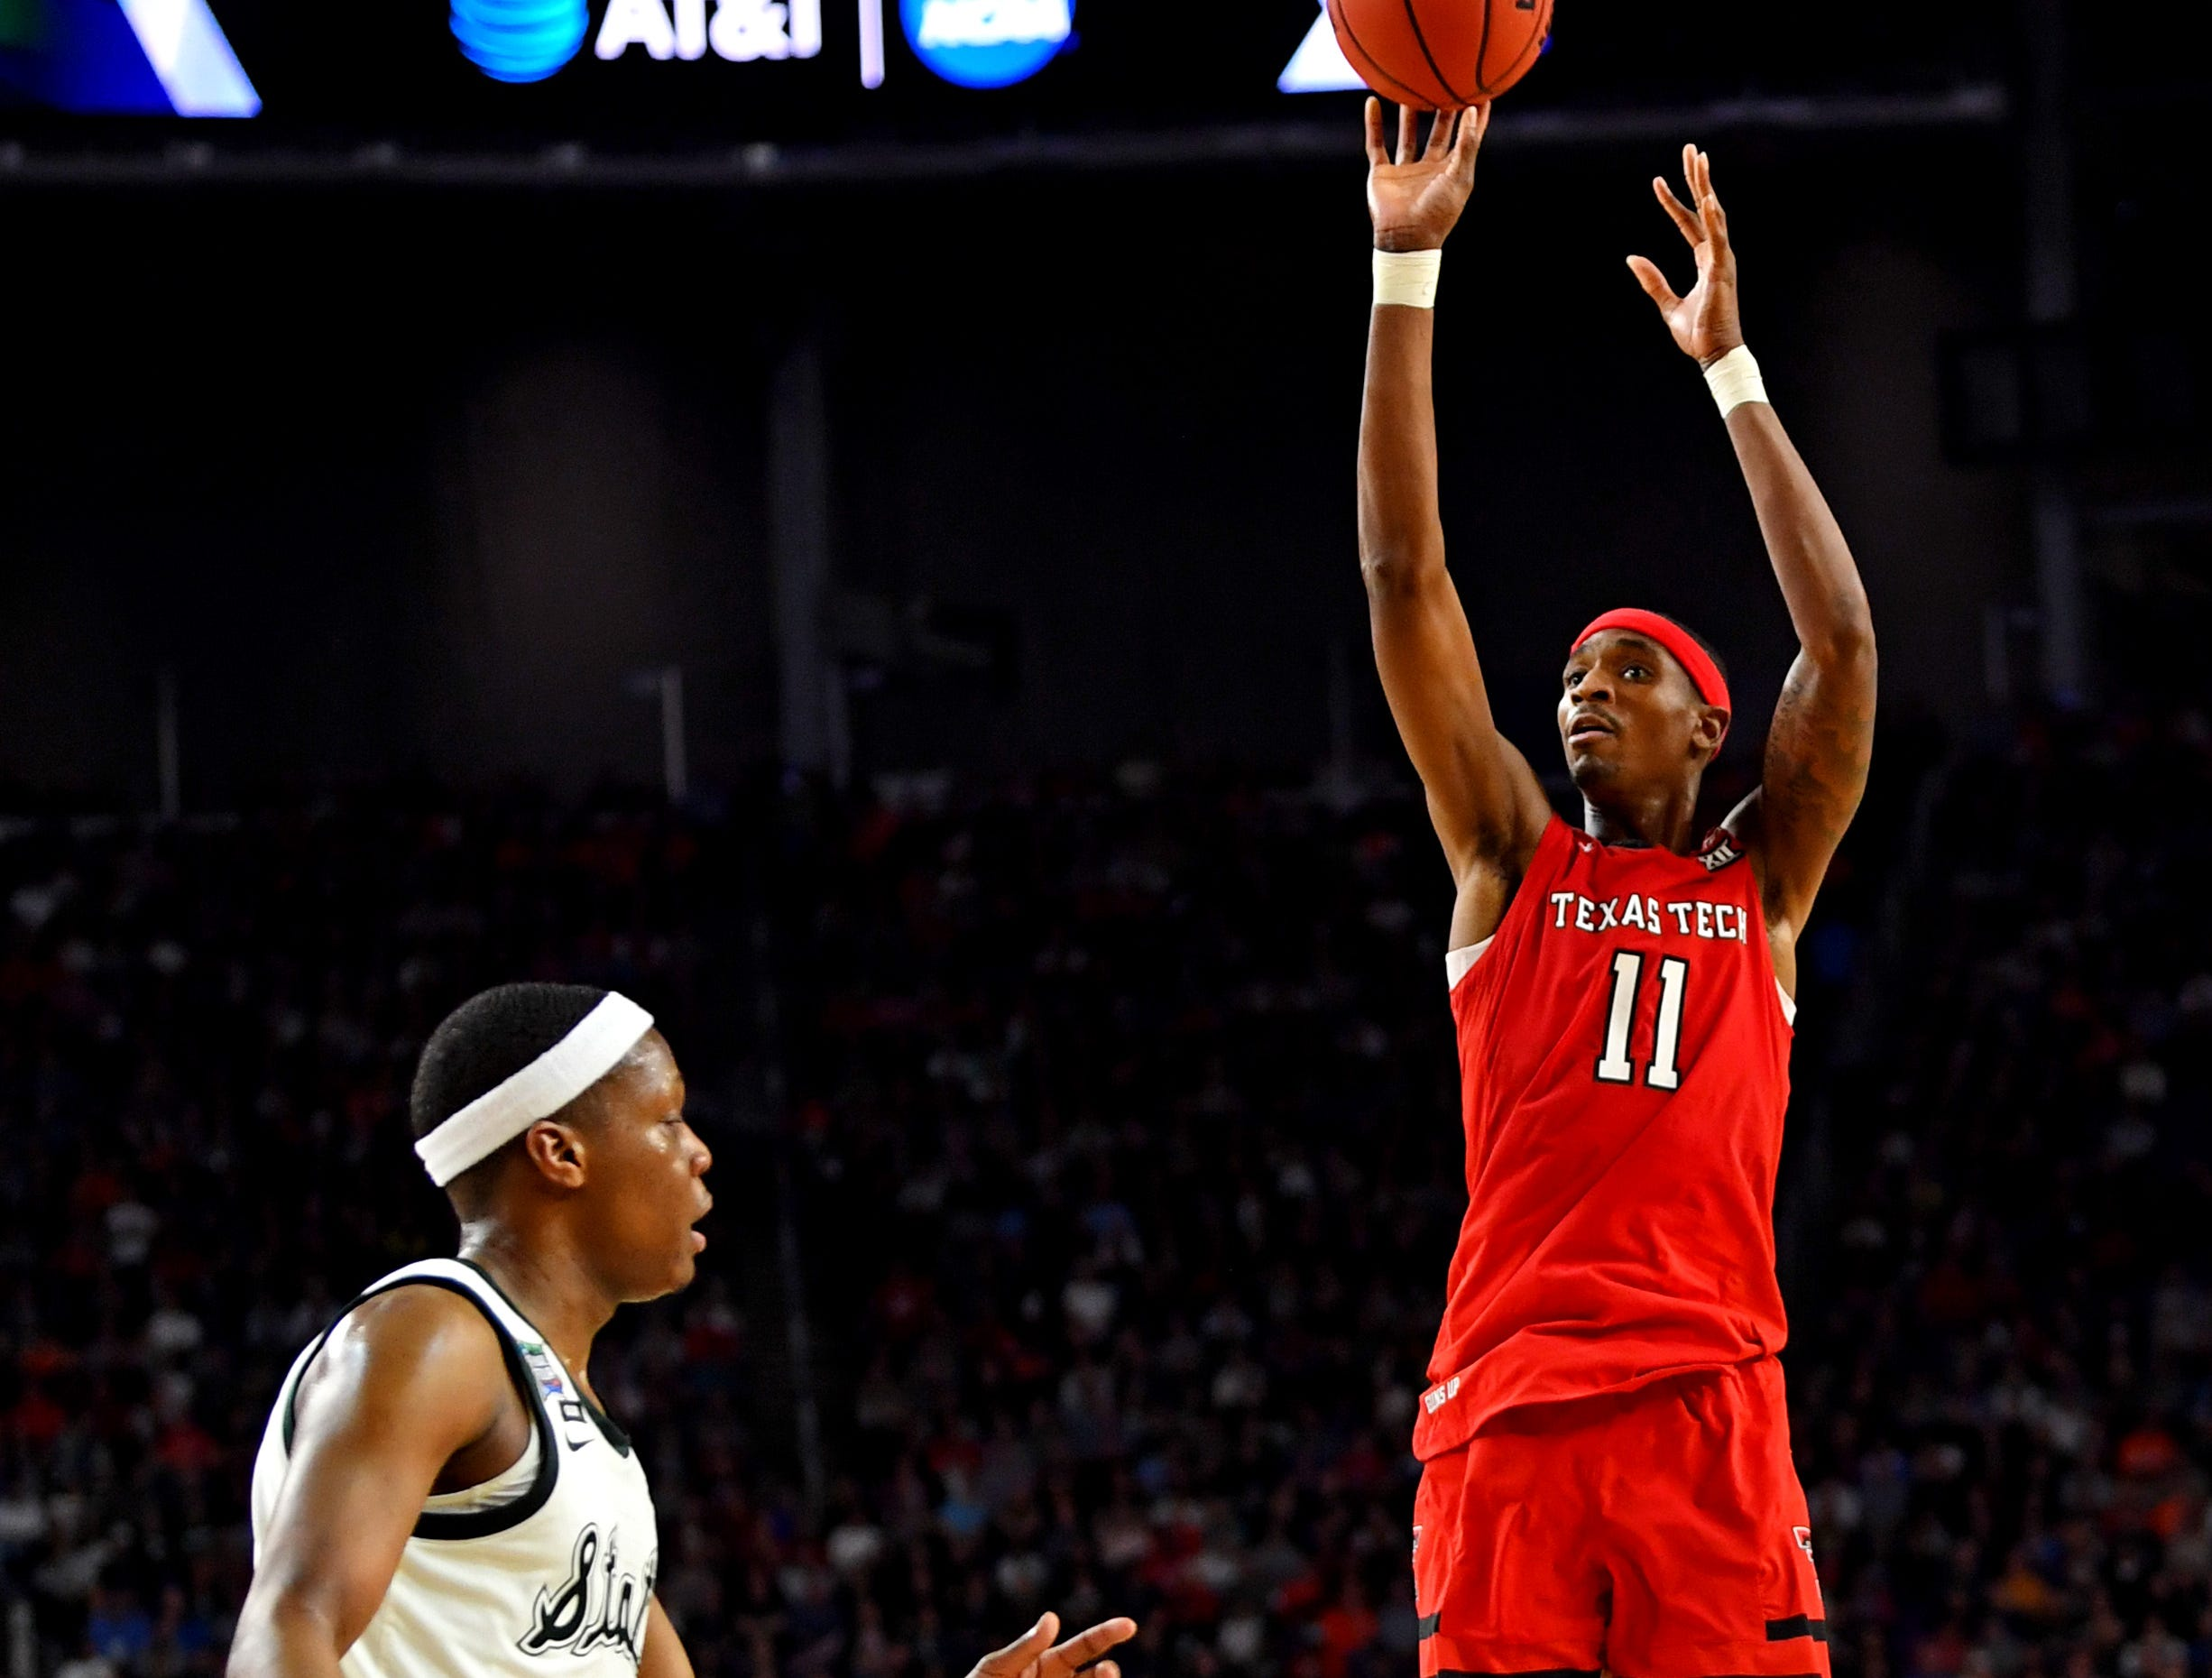 Apr 6, 2019; Minneapolis, MN, USA; Texas Tech Red Raiders forward Tariq Owens (11) shoots the ball against Michigan State Spartans guard Cassius Winston (5) during the first half in the semifinals of the 2019 men's Final Four at US Bank Stadium. Mandatory Credit: Bob Donnan-USA TODAY Sports